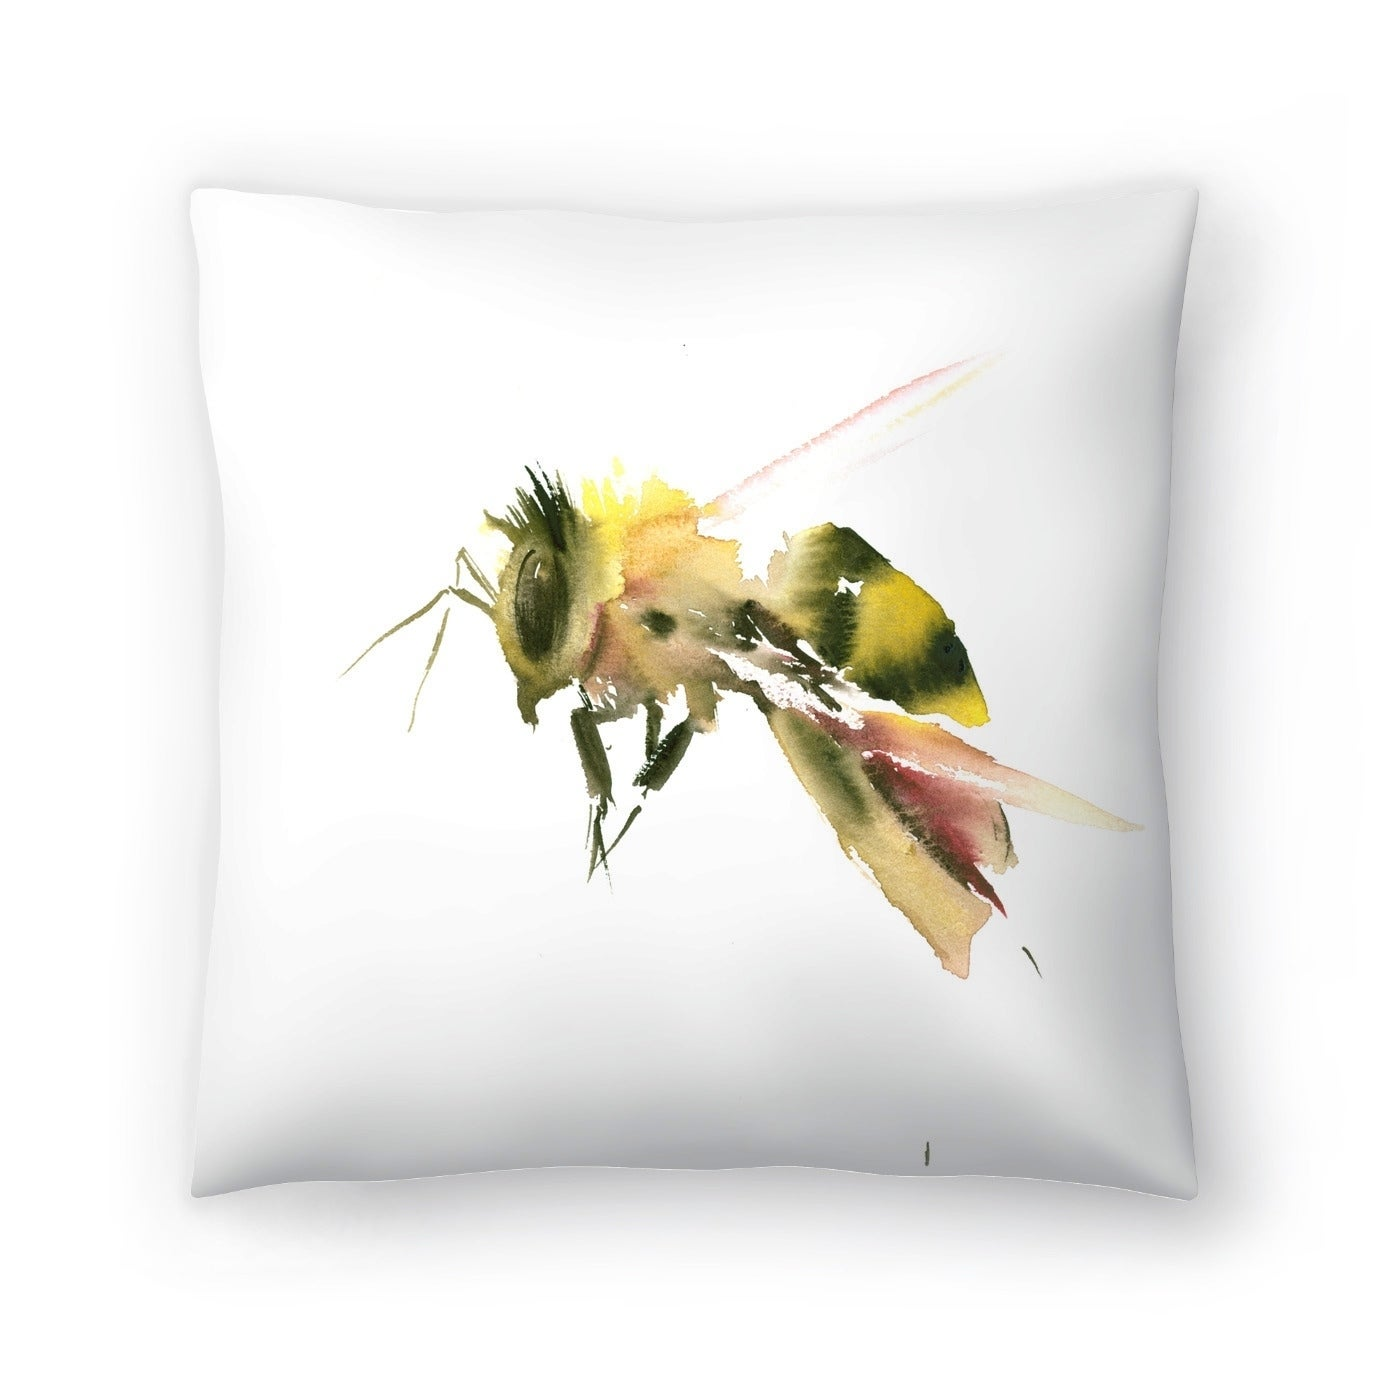 Americanflat Bee 2 Throw Pillow (Medium - 18 x 18)